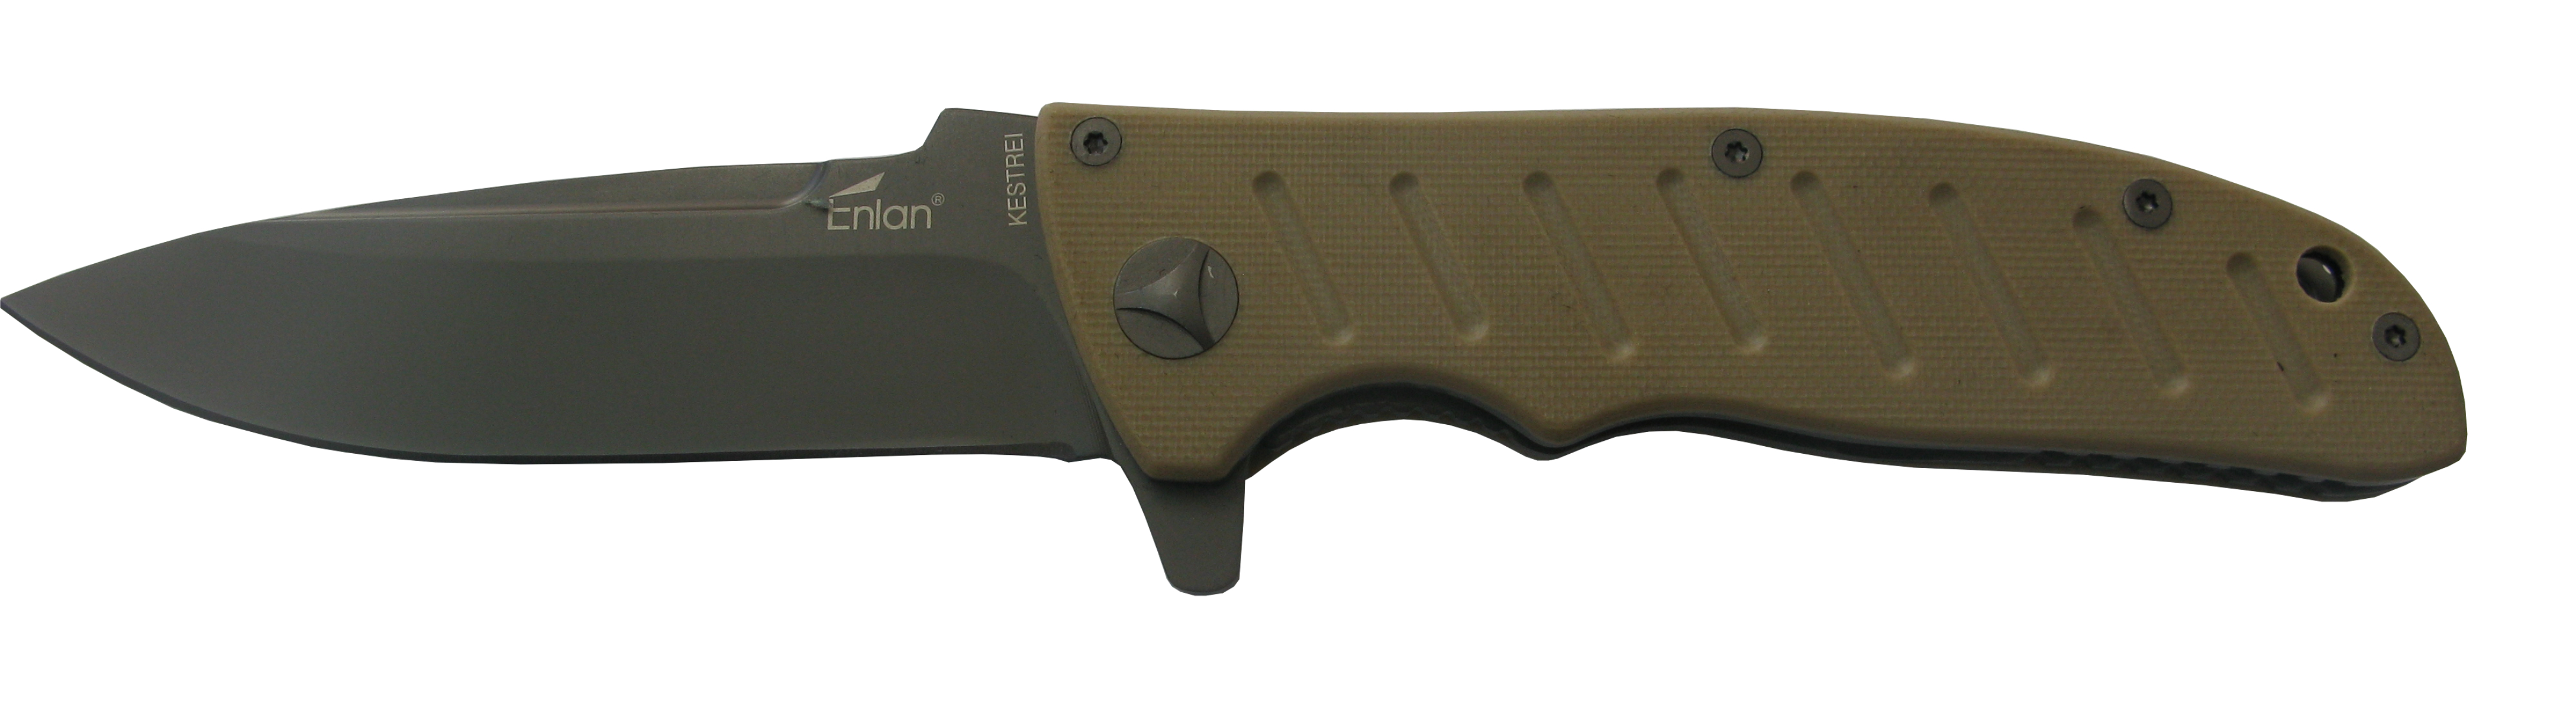 The Enlan Coqui is a versatile EDC knife